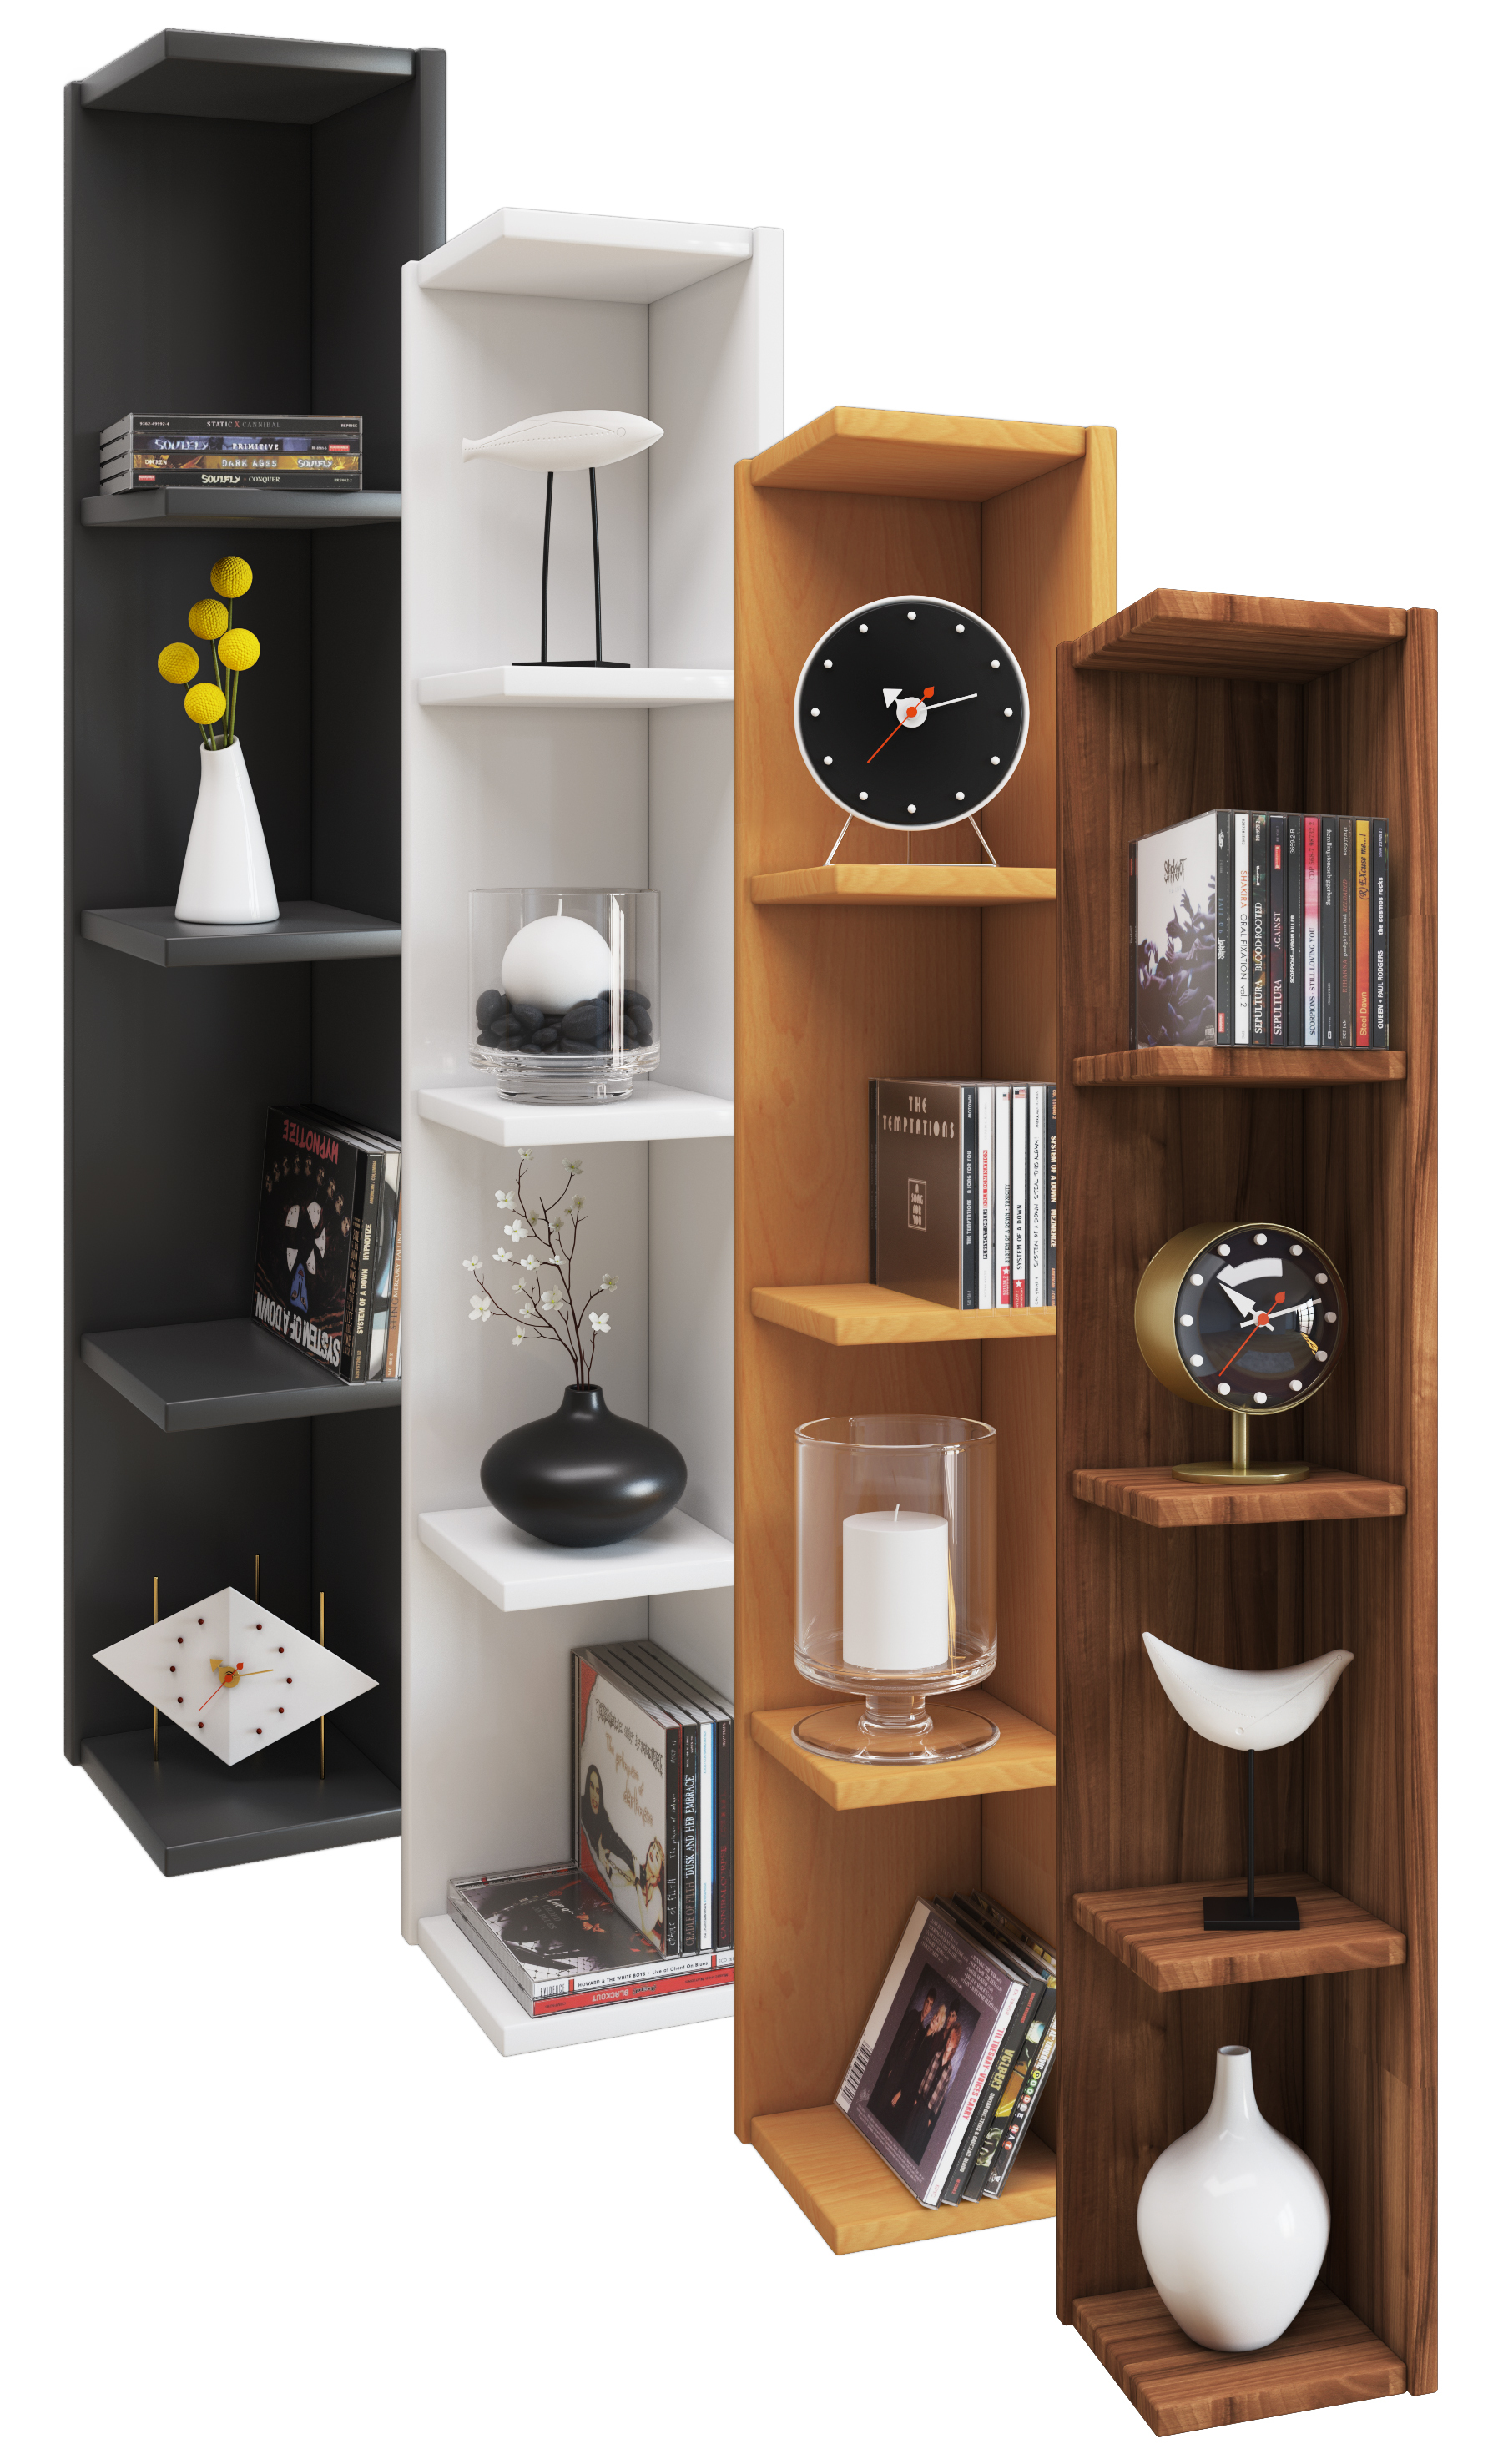 vcm gruppe vcm eckregal wandregal standregal b cherregal cd dvd regal holz board honsa. Black Bedroom Furniture Sets. Home Design Ideas